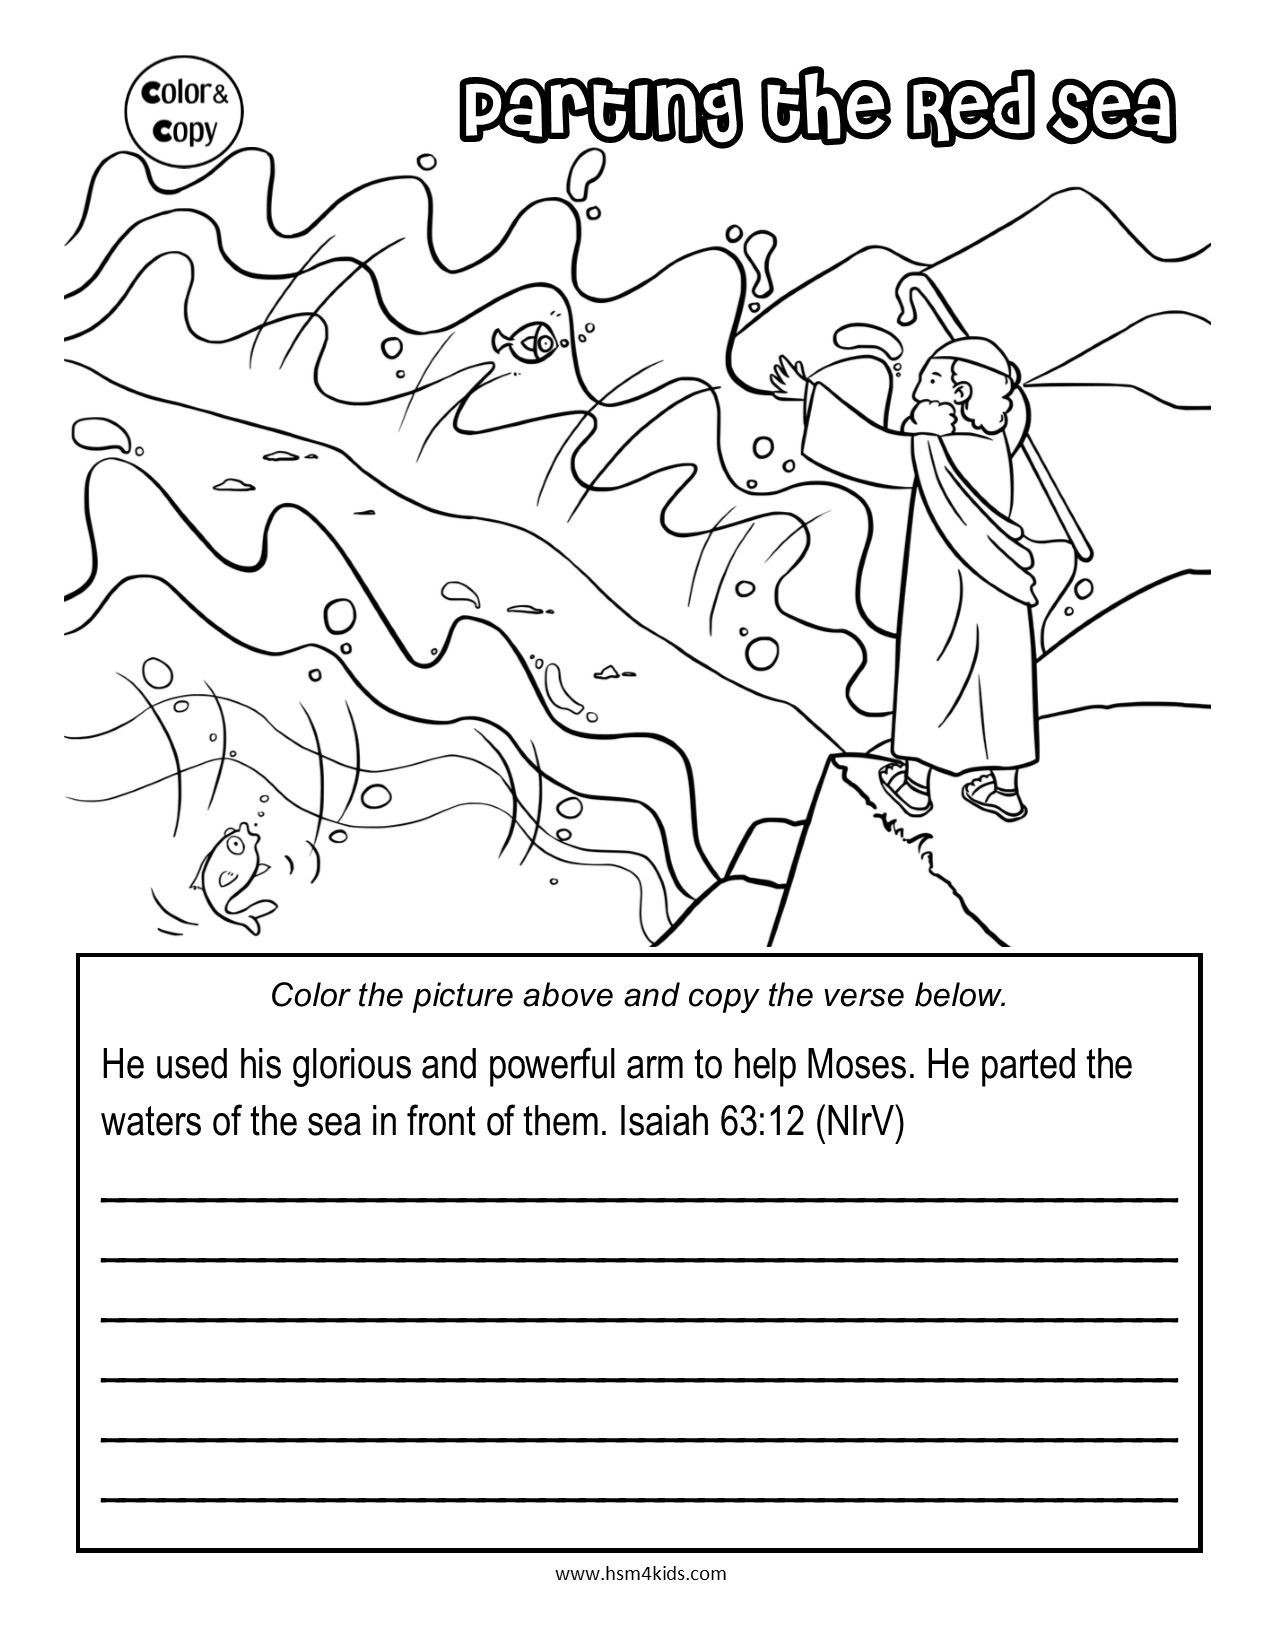 Free Printable Religious Worksheets Free Color and Copy Bible Worksheet Moses and the Red Sea